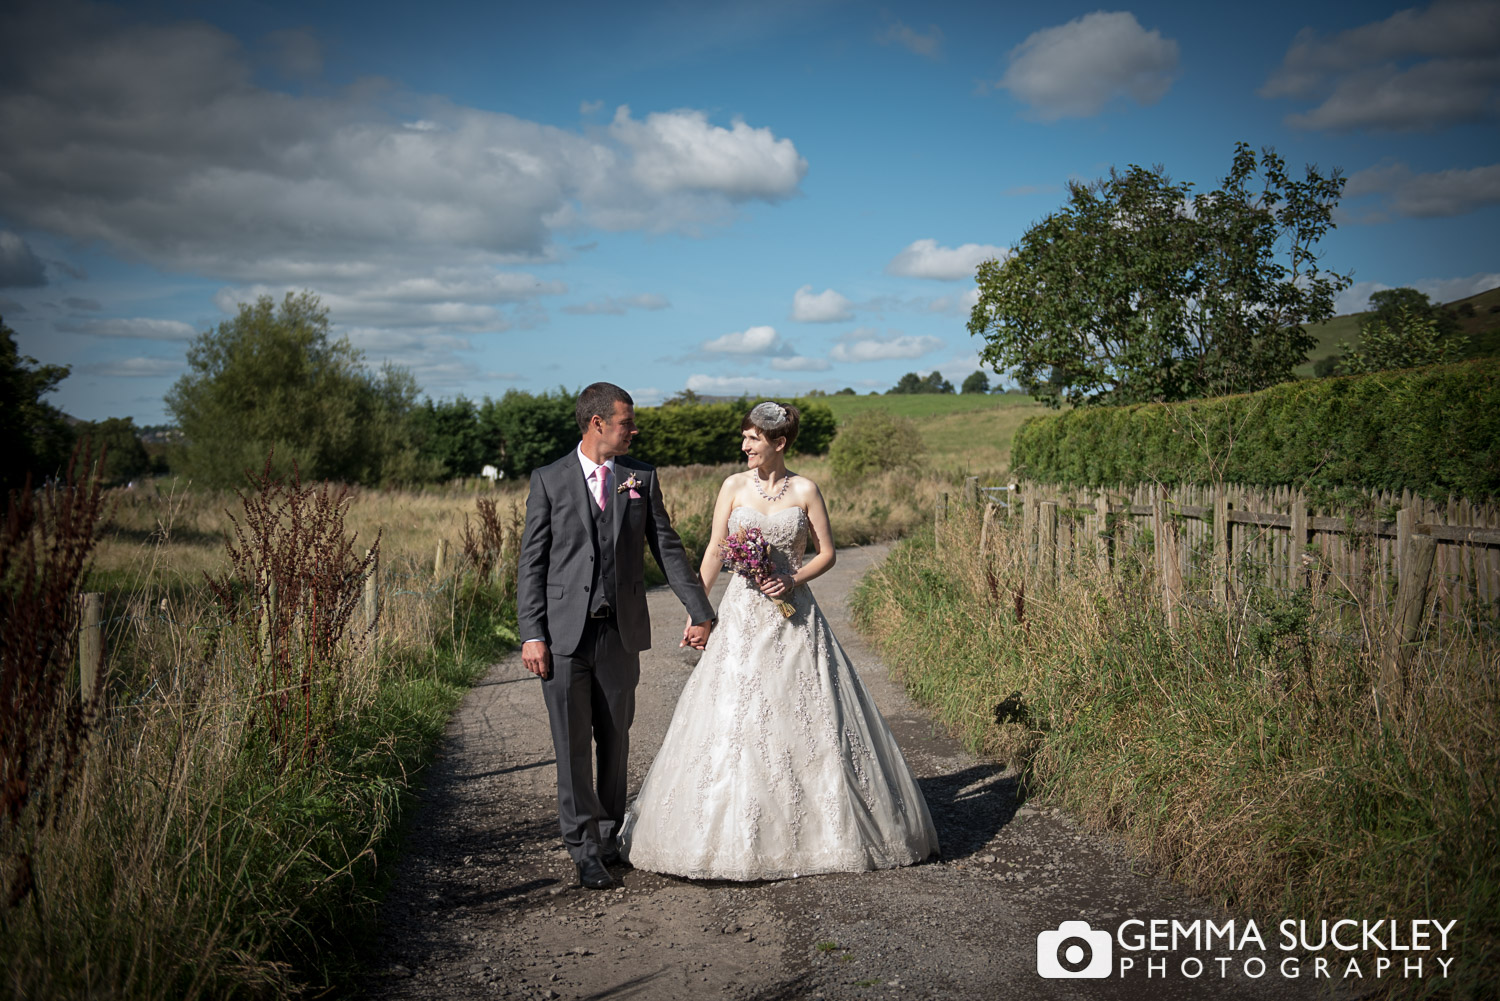 skipton-wedding-photographer-gemma-suckley-photography.JPG